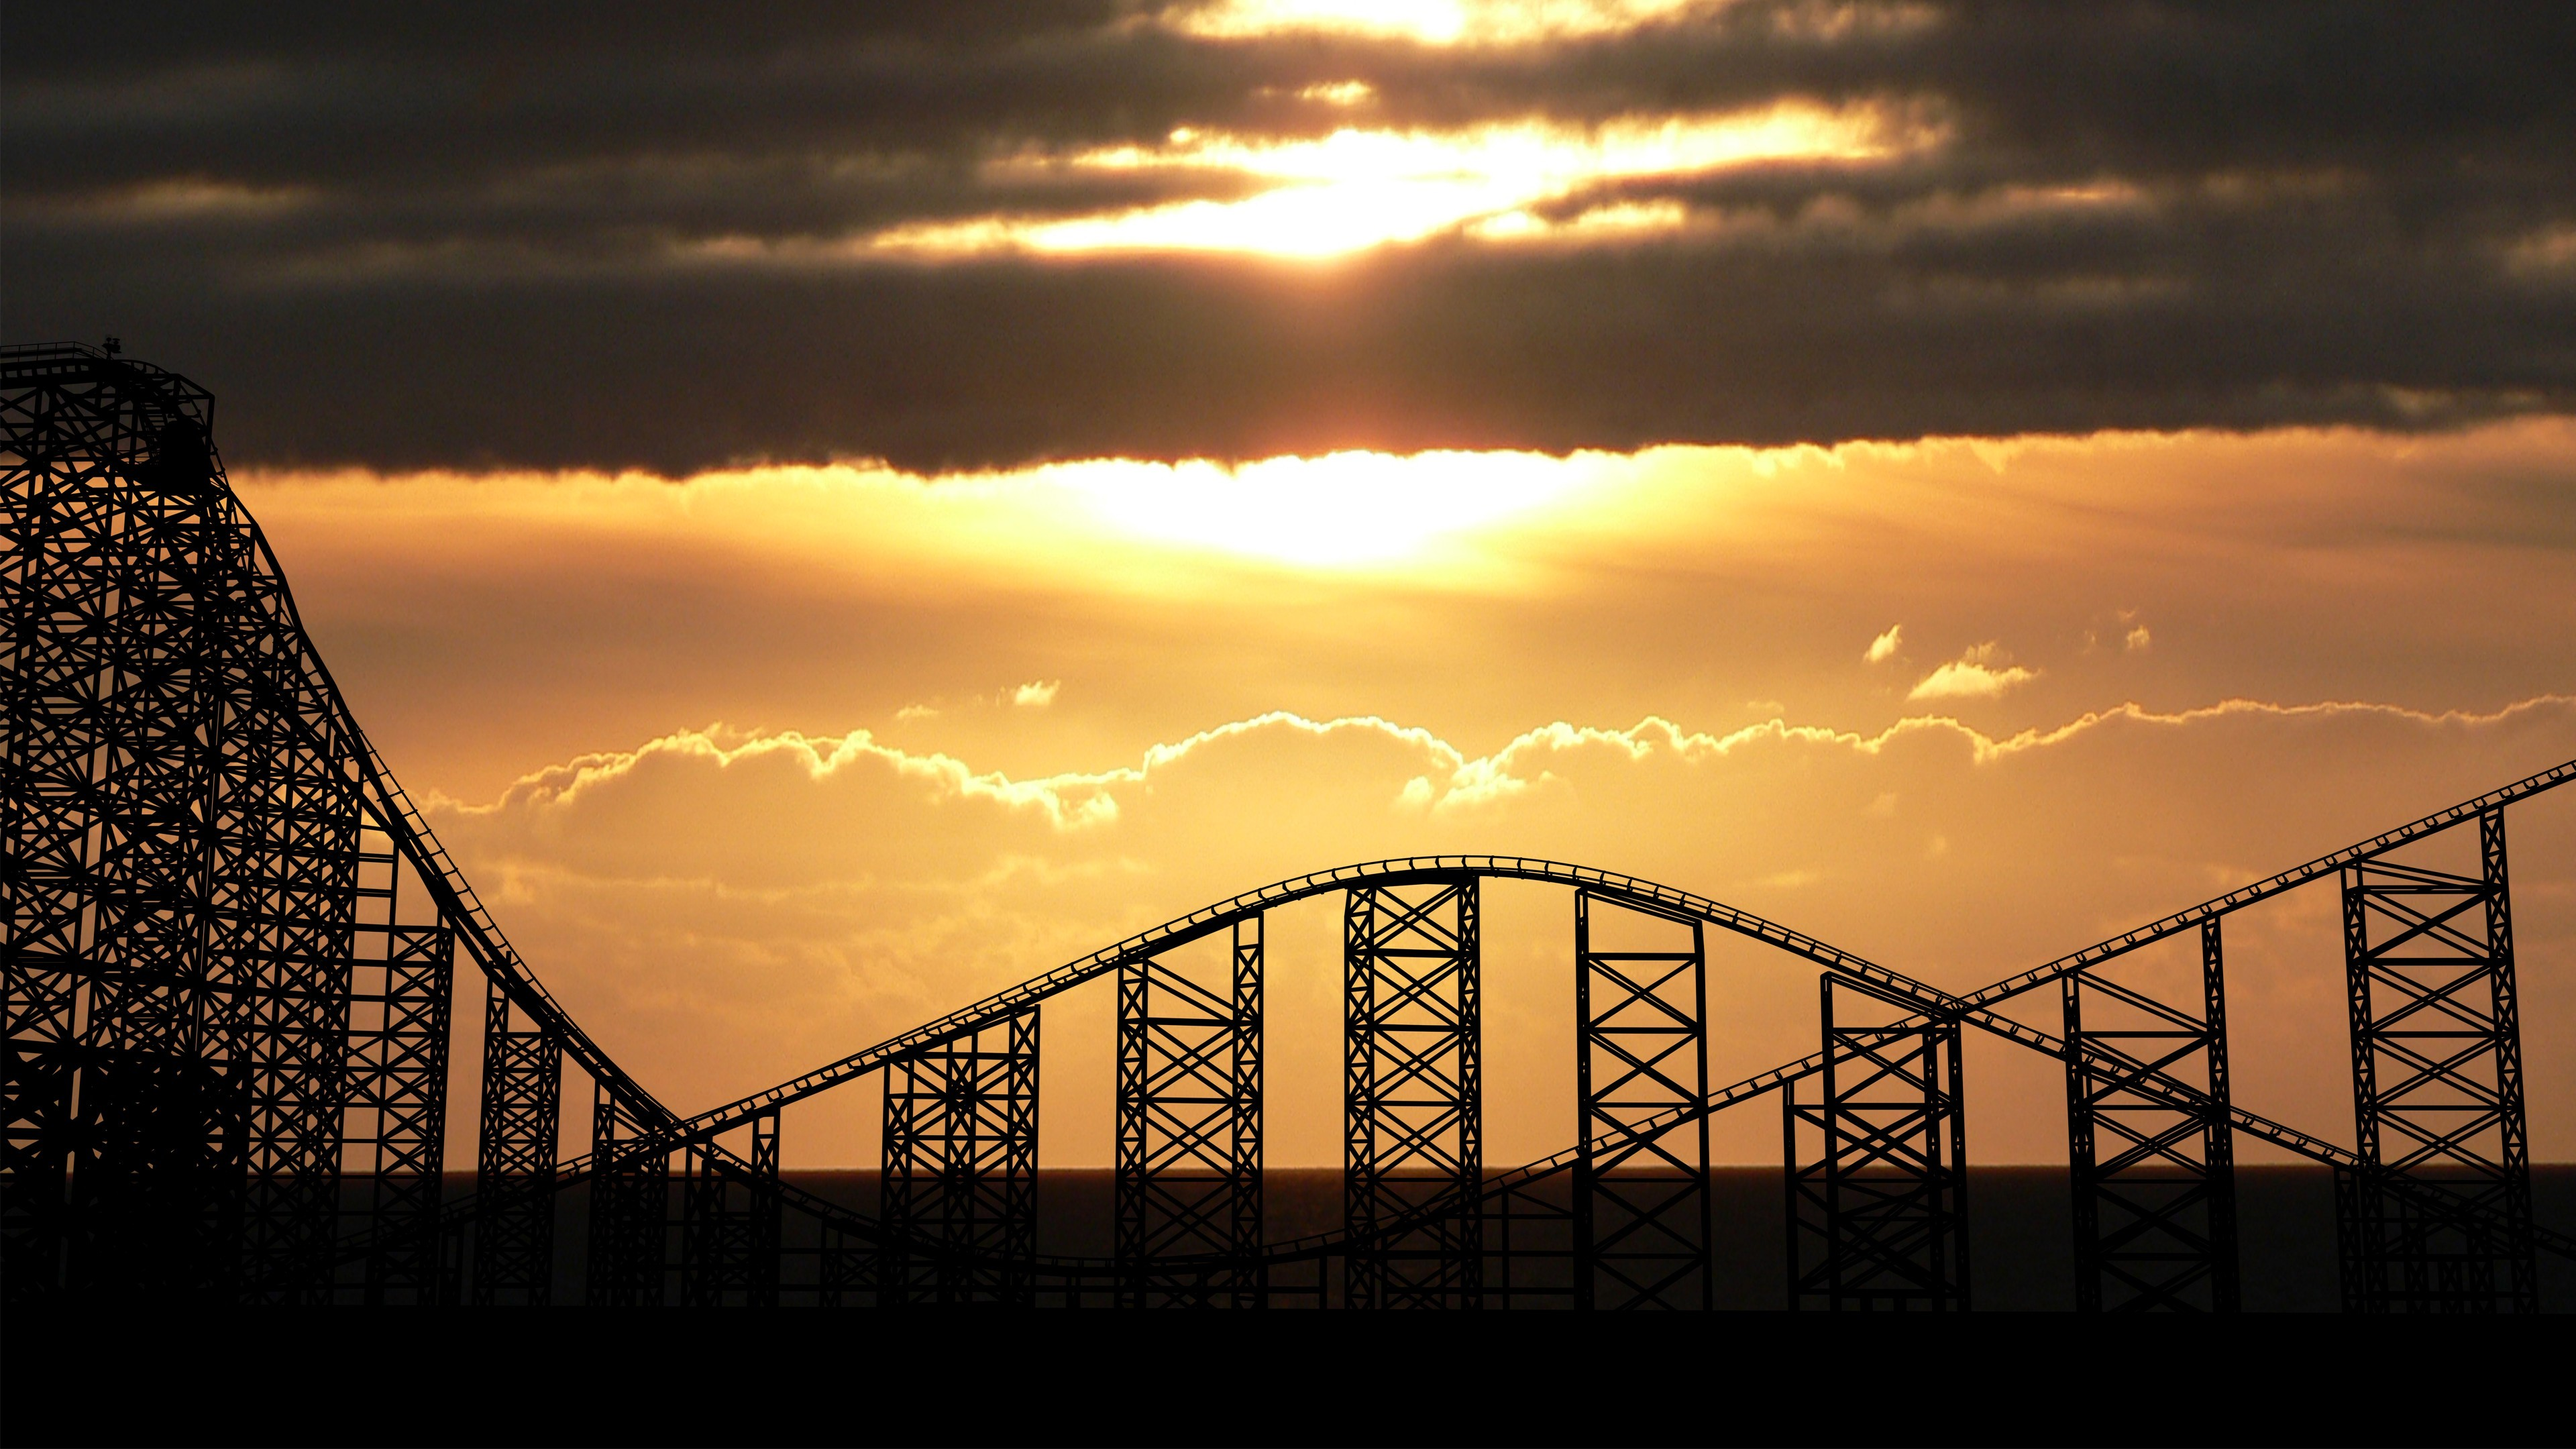 sunset silhouettes roller coasters HD Wallpaper